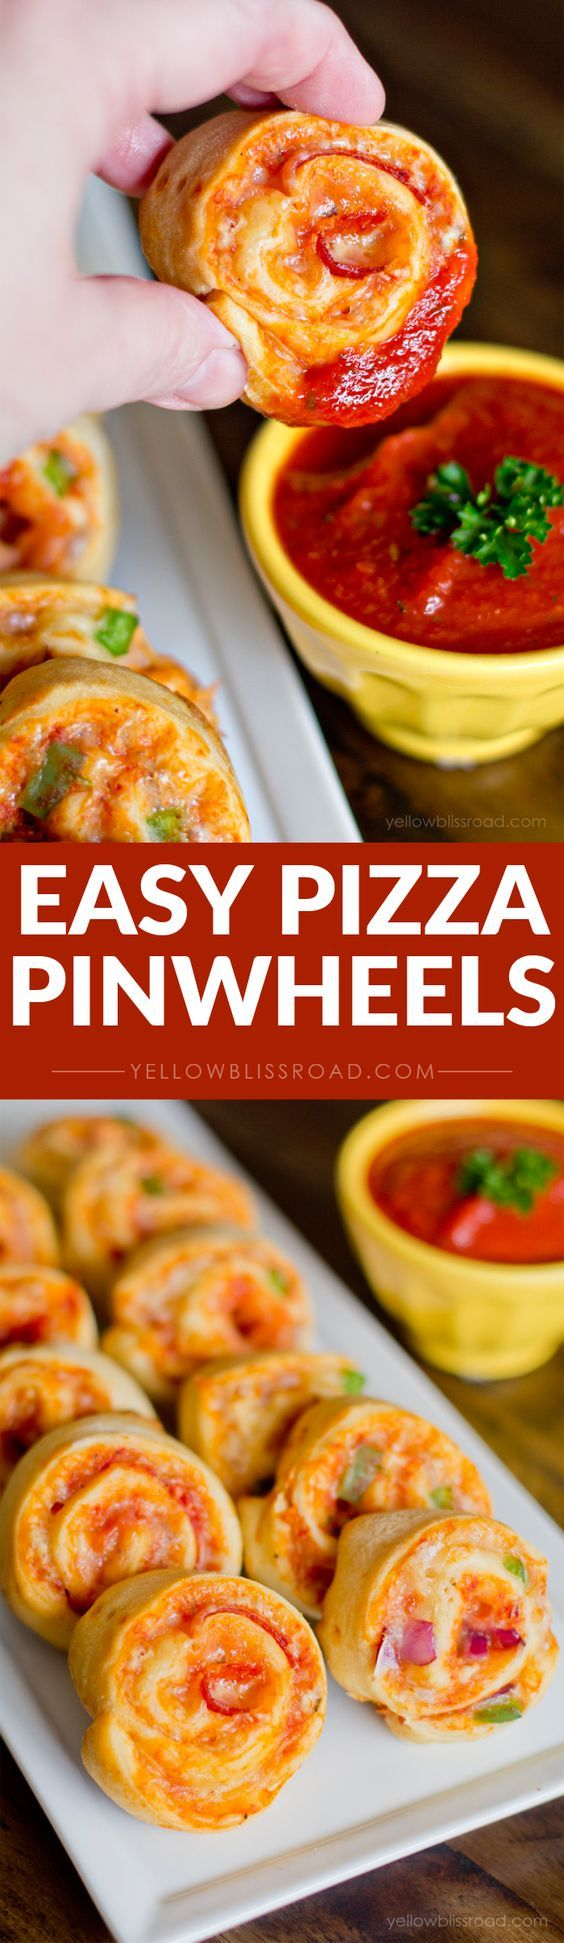 1000+ ideas about Pizza Pinwheels on Pinterest | Pinwheels ...